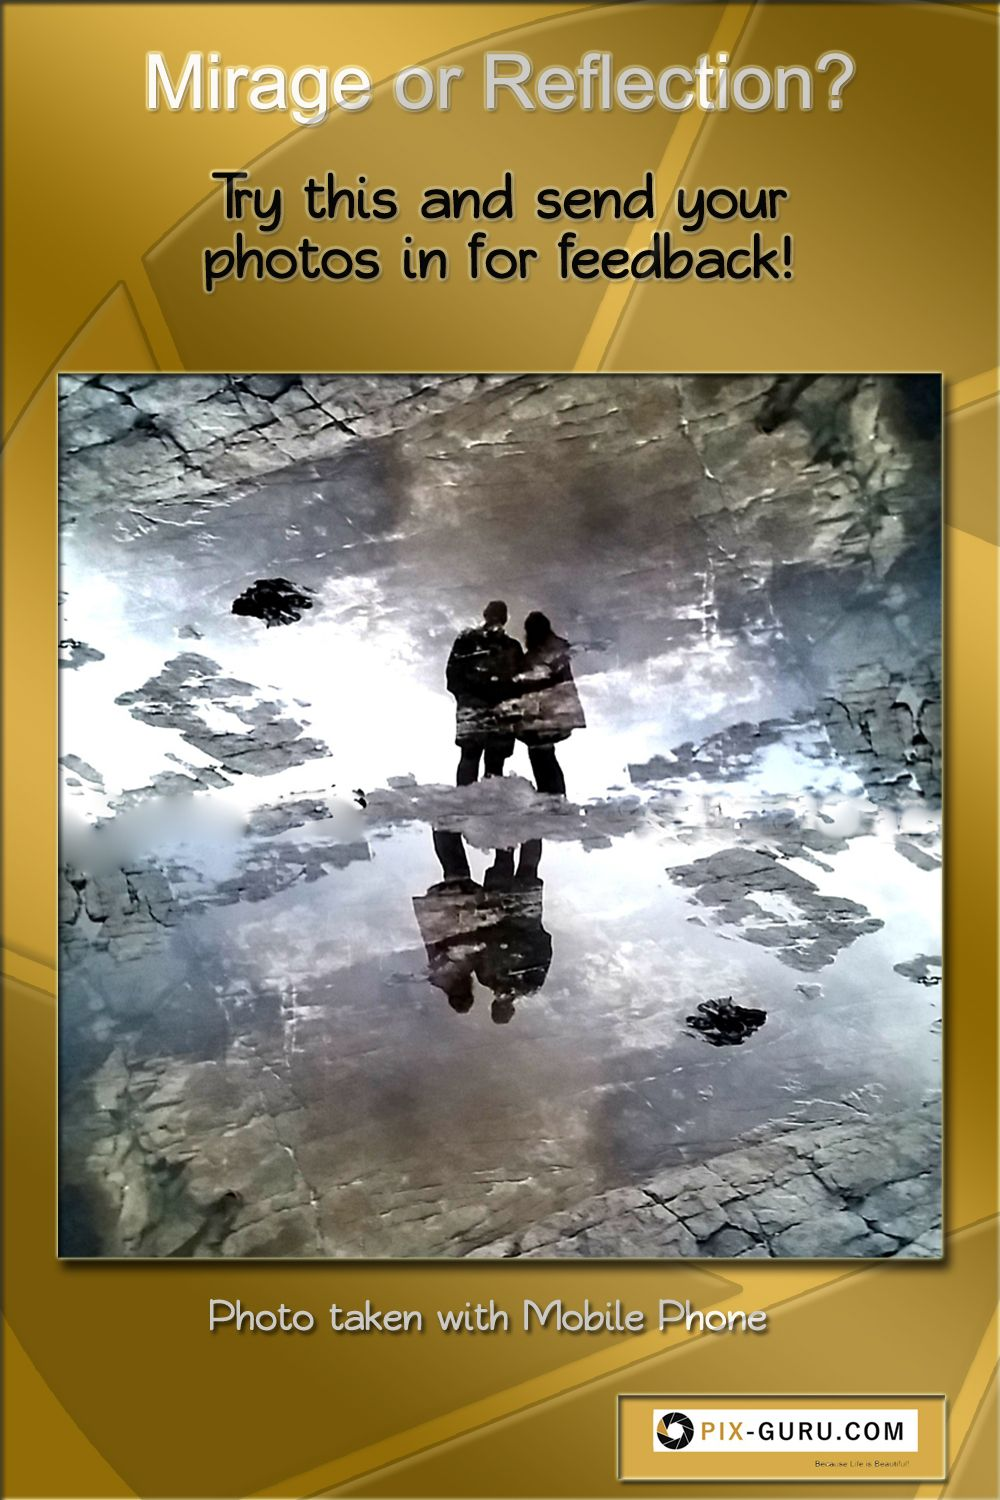 This photo was taken with a mobile phone - guess what was done to make it look like a reflection/mirage/dream? Try this and let us give you feedback on your attempt! #Miragephoto, #Reflectionphoto, #PeopleinaReflection, #CloudRefelectionPhoto, #CritiqueMyRefelctionShot, #MobilePhotography, #RefelectionMobileShots